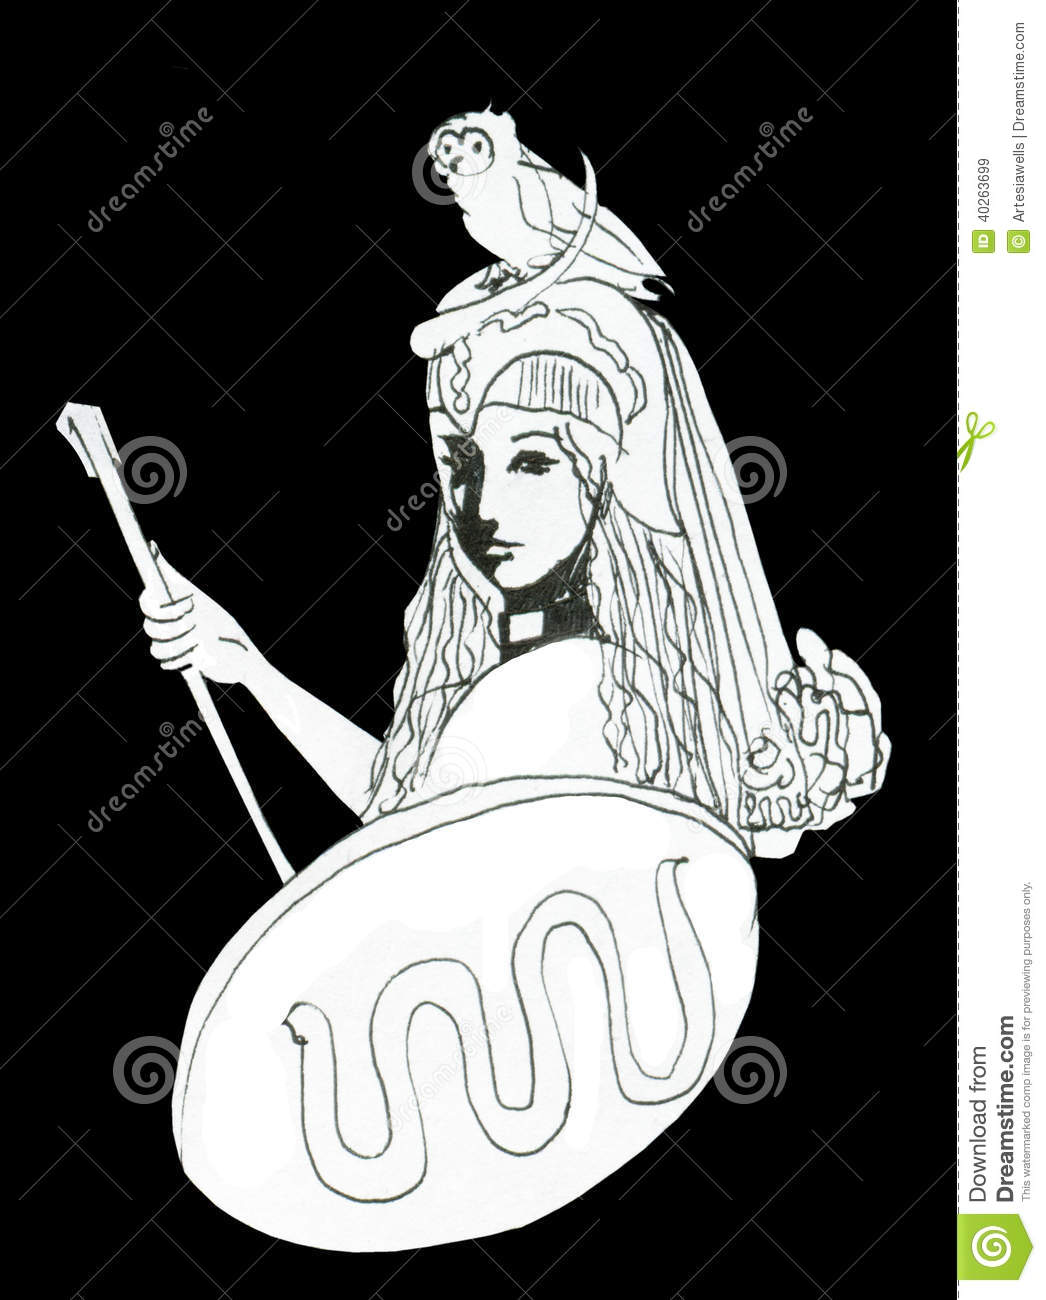 Pallas athena ink drawing with attributes stock illustration pallas athena ink drawing with attributes buycottarizona Images